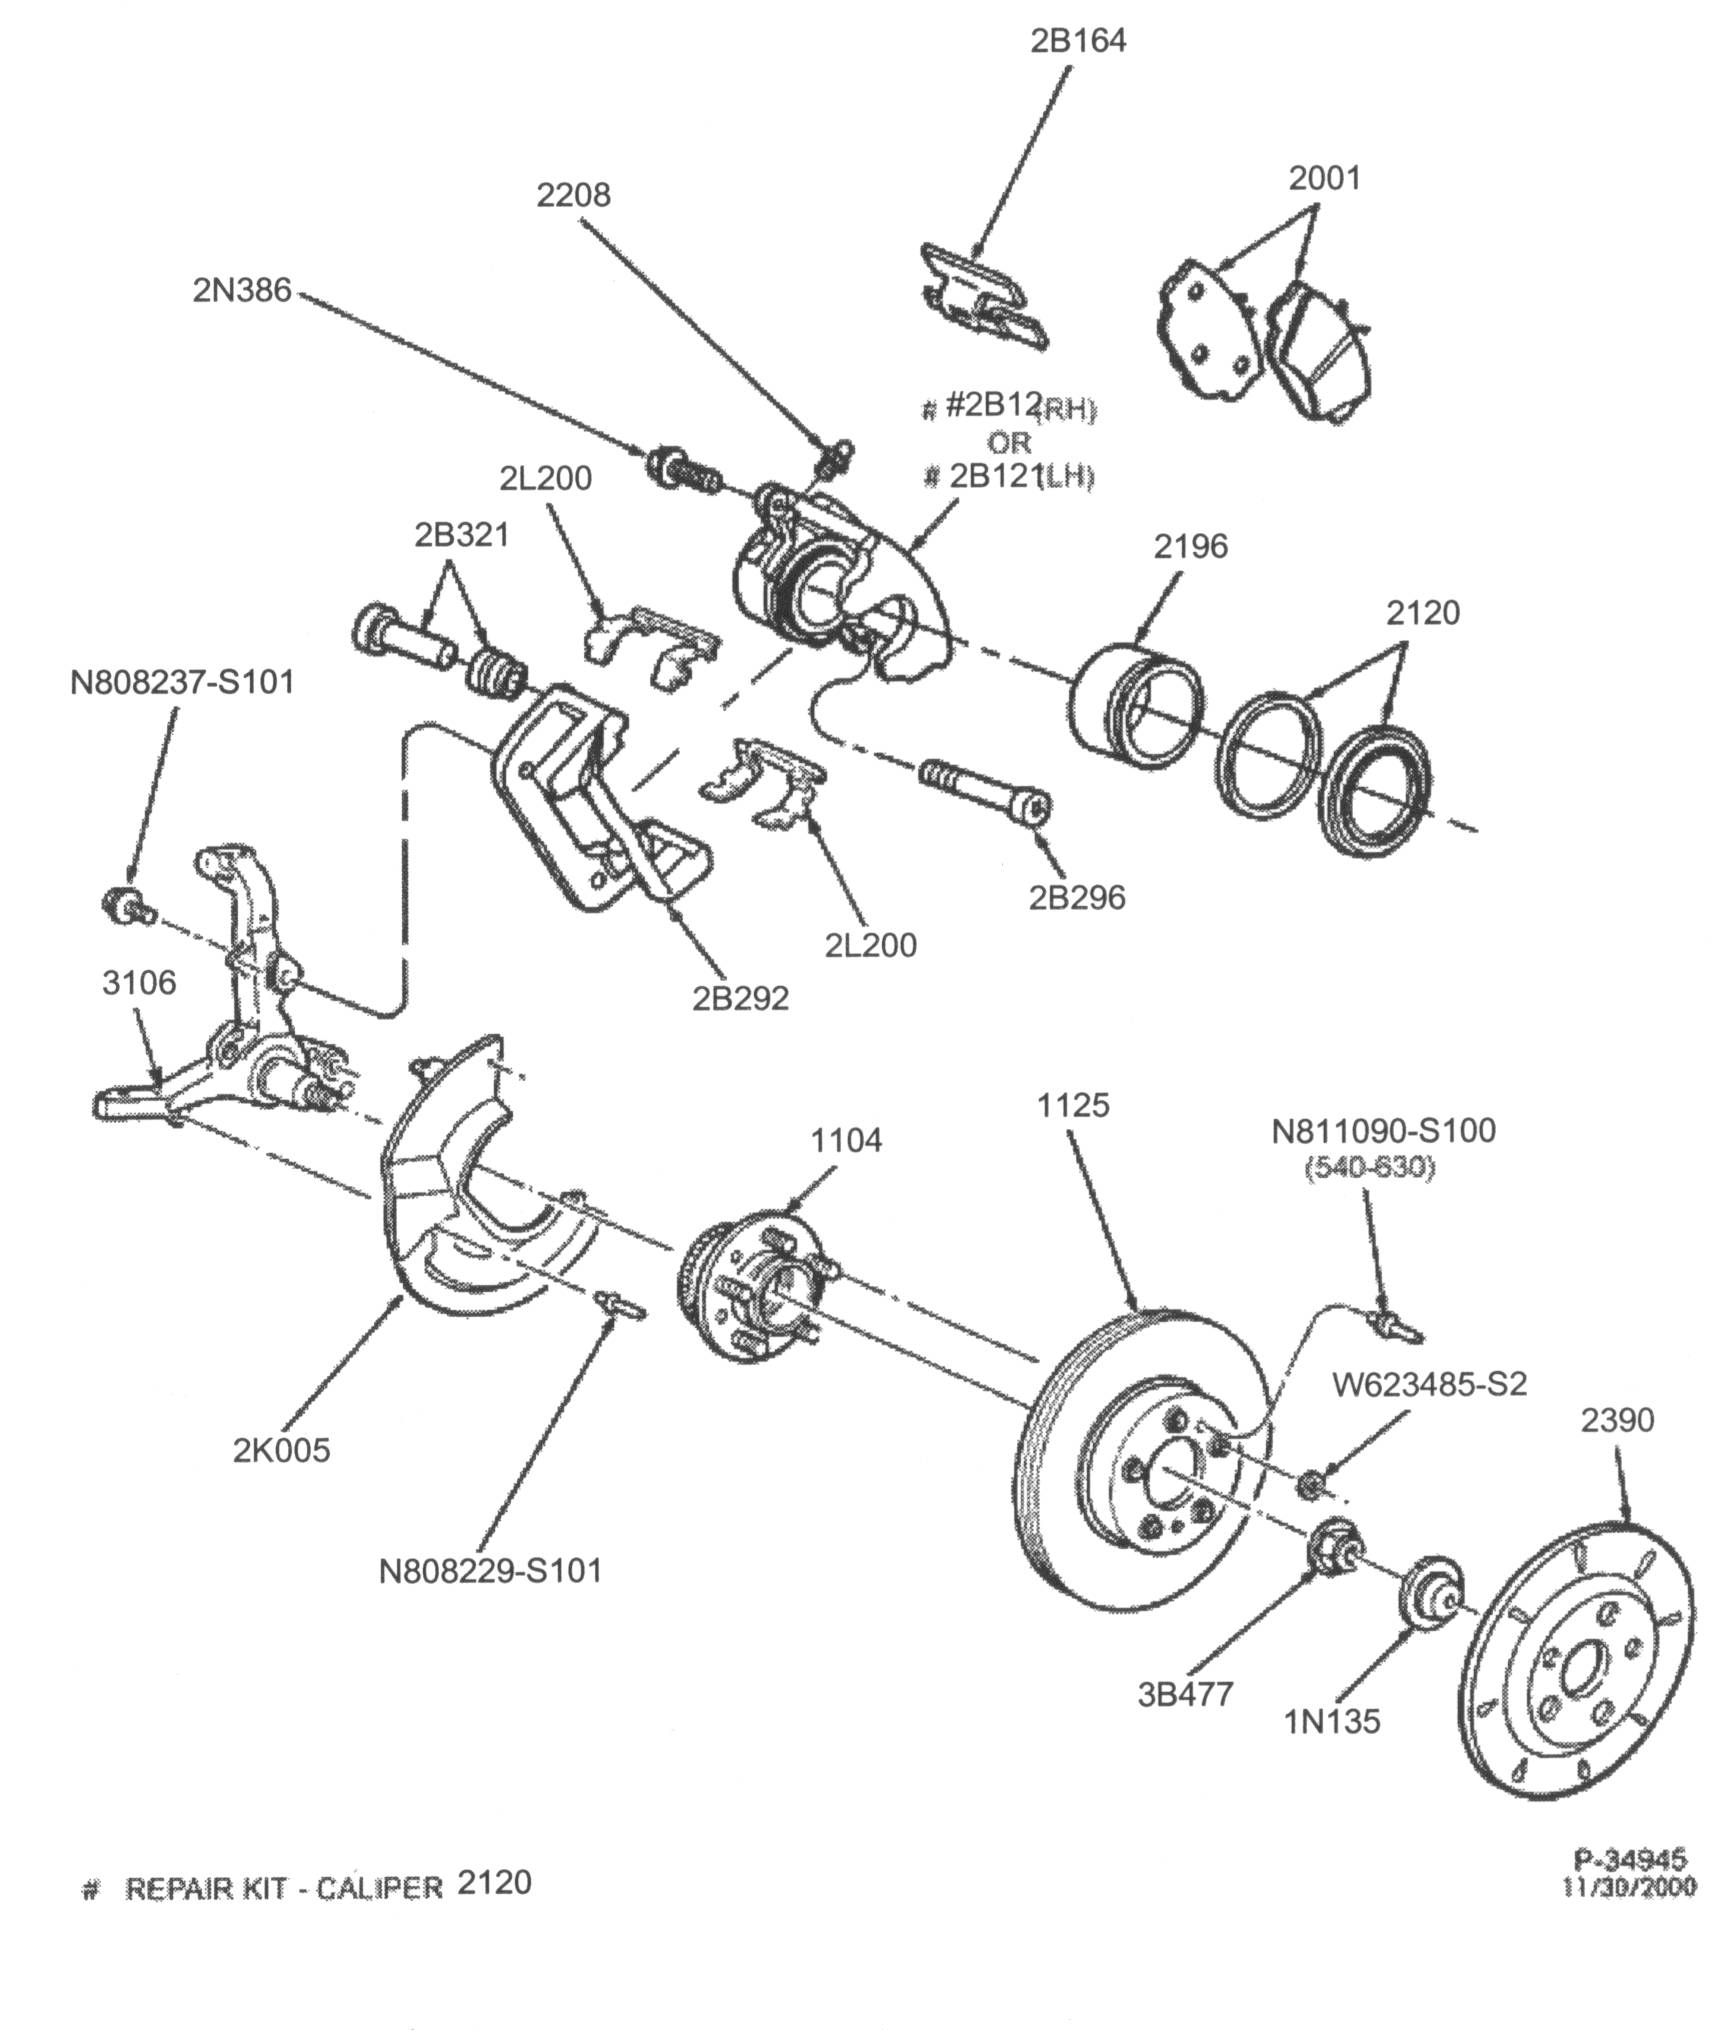 hight resolution of below is an exploded view of the front brake system in a 98 crown vic